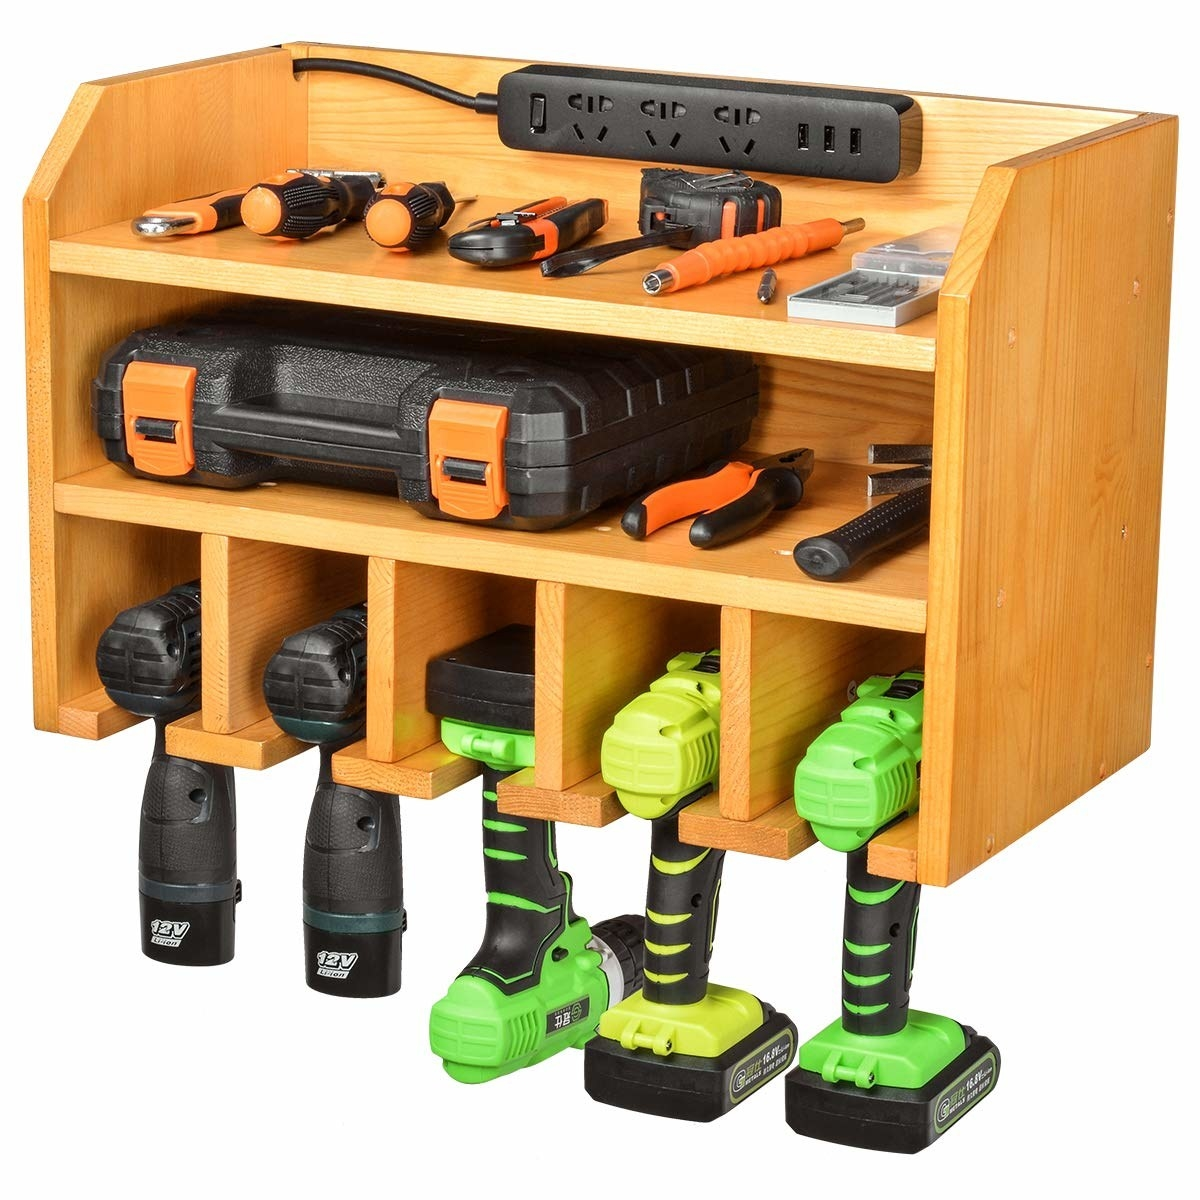 wall mounted wood open shelf system with compartments to store power tools and hand tools